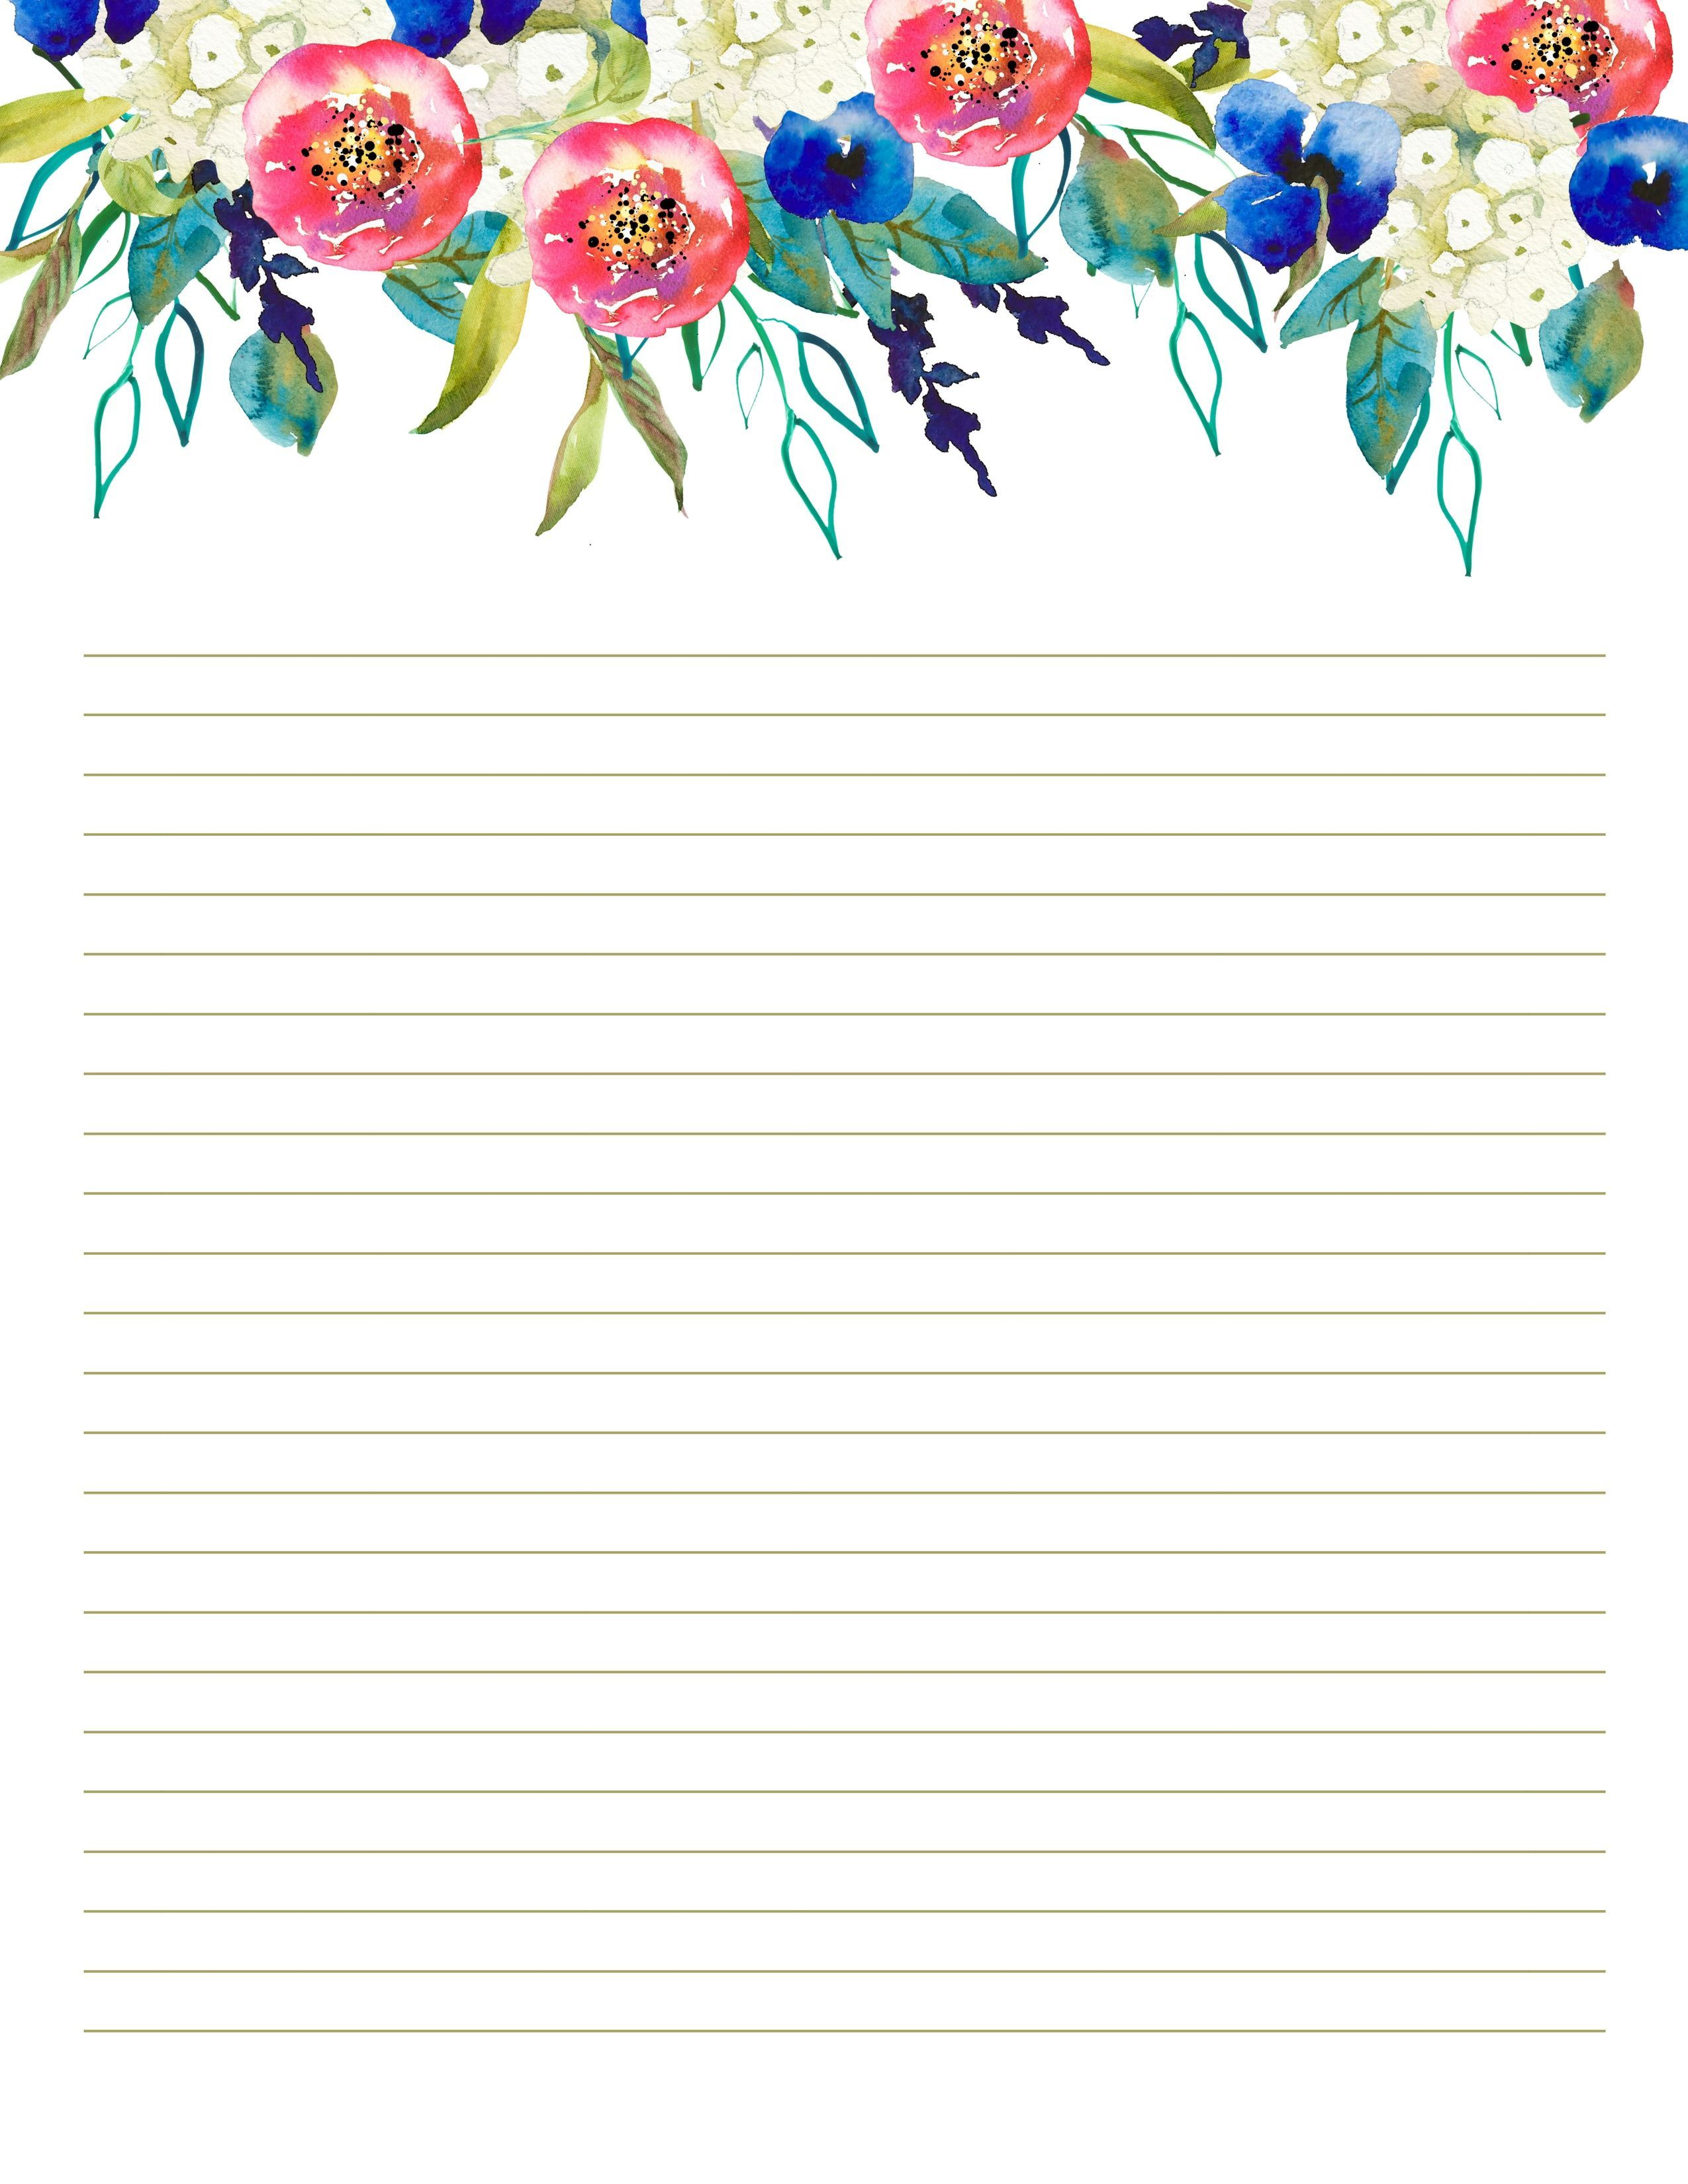 007 Top Free Printable Stationery Paper Template Design  TemplatesFull